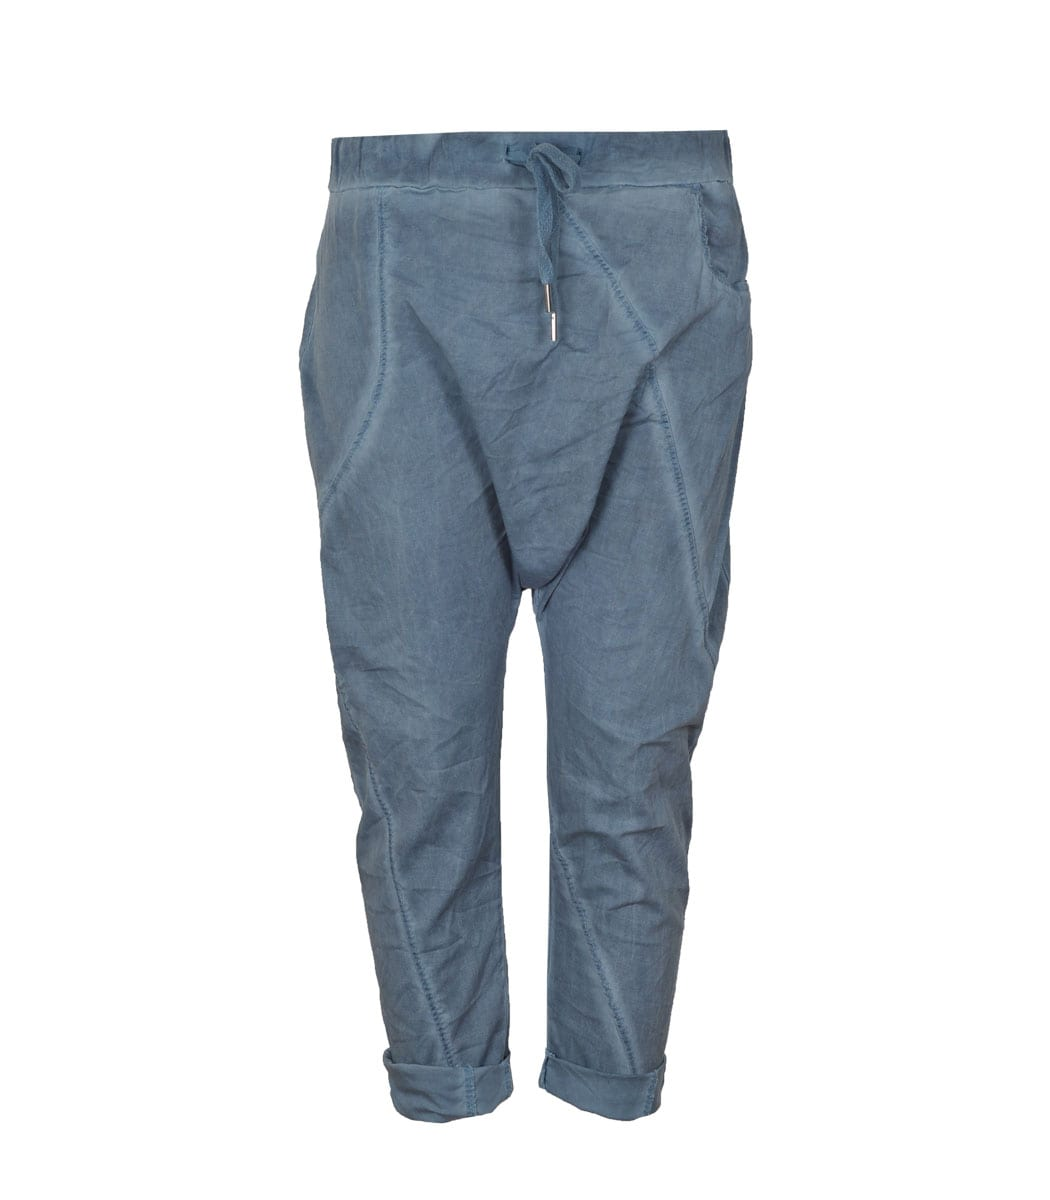 Washed cotton panel pants